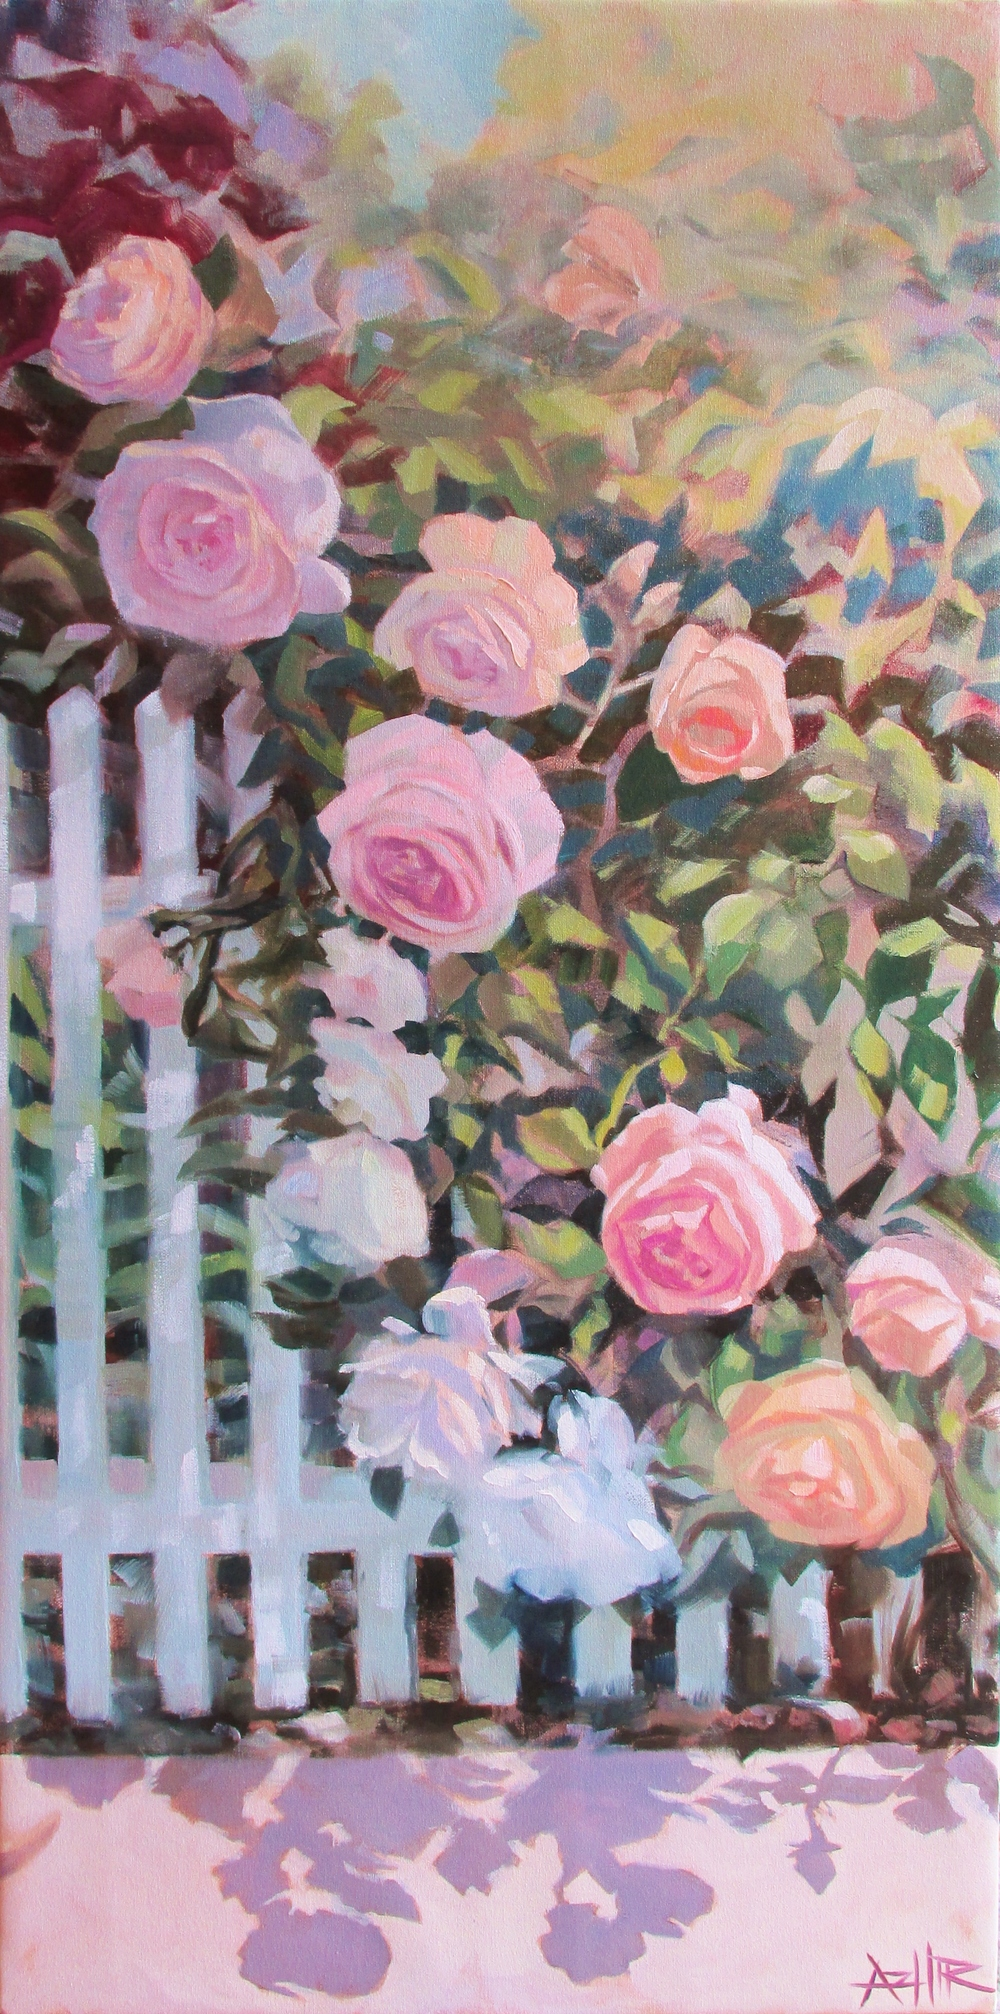 "SOLD, Roses on the Picket Fence, Copyright 2016 Hirschten, Oil on Canvas, 18"" x 36"""